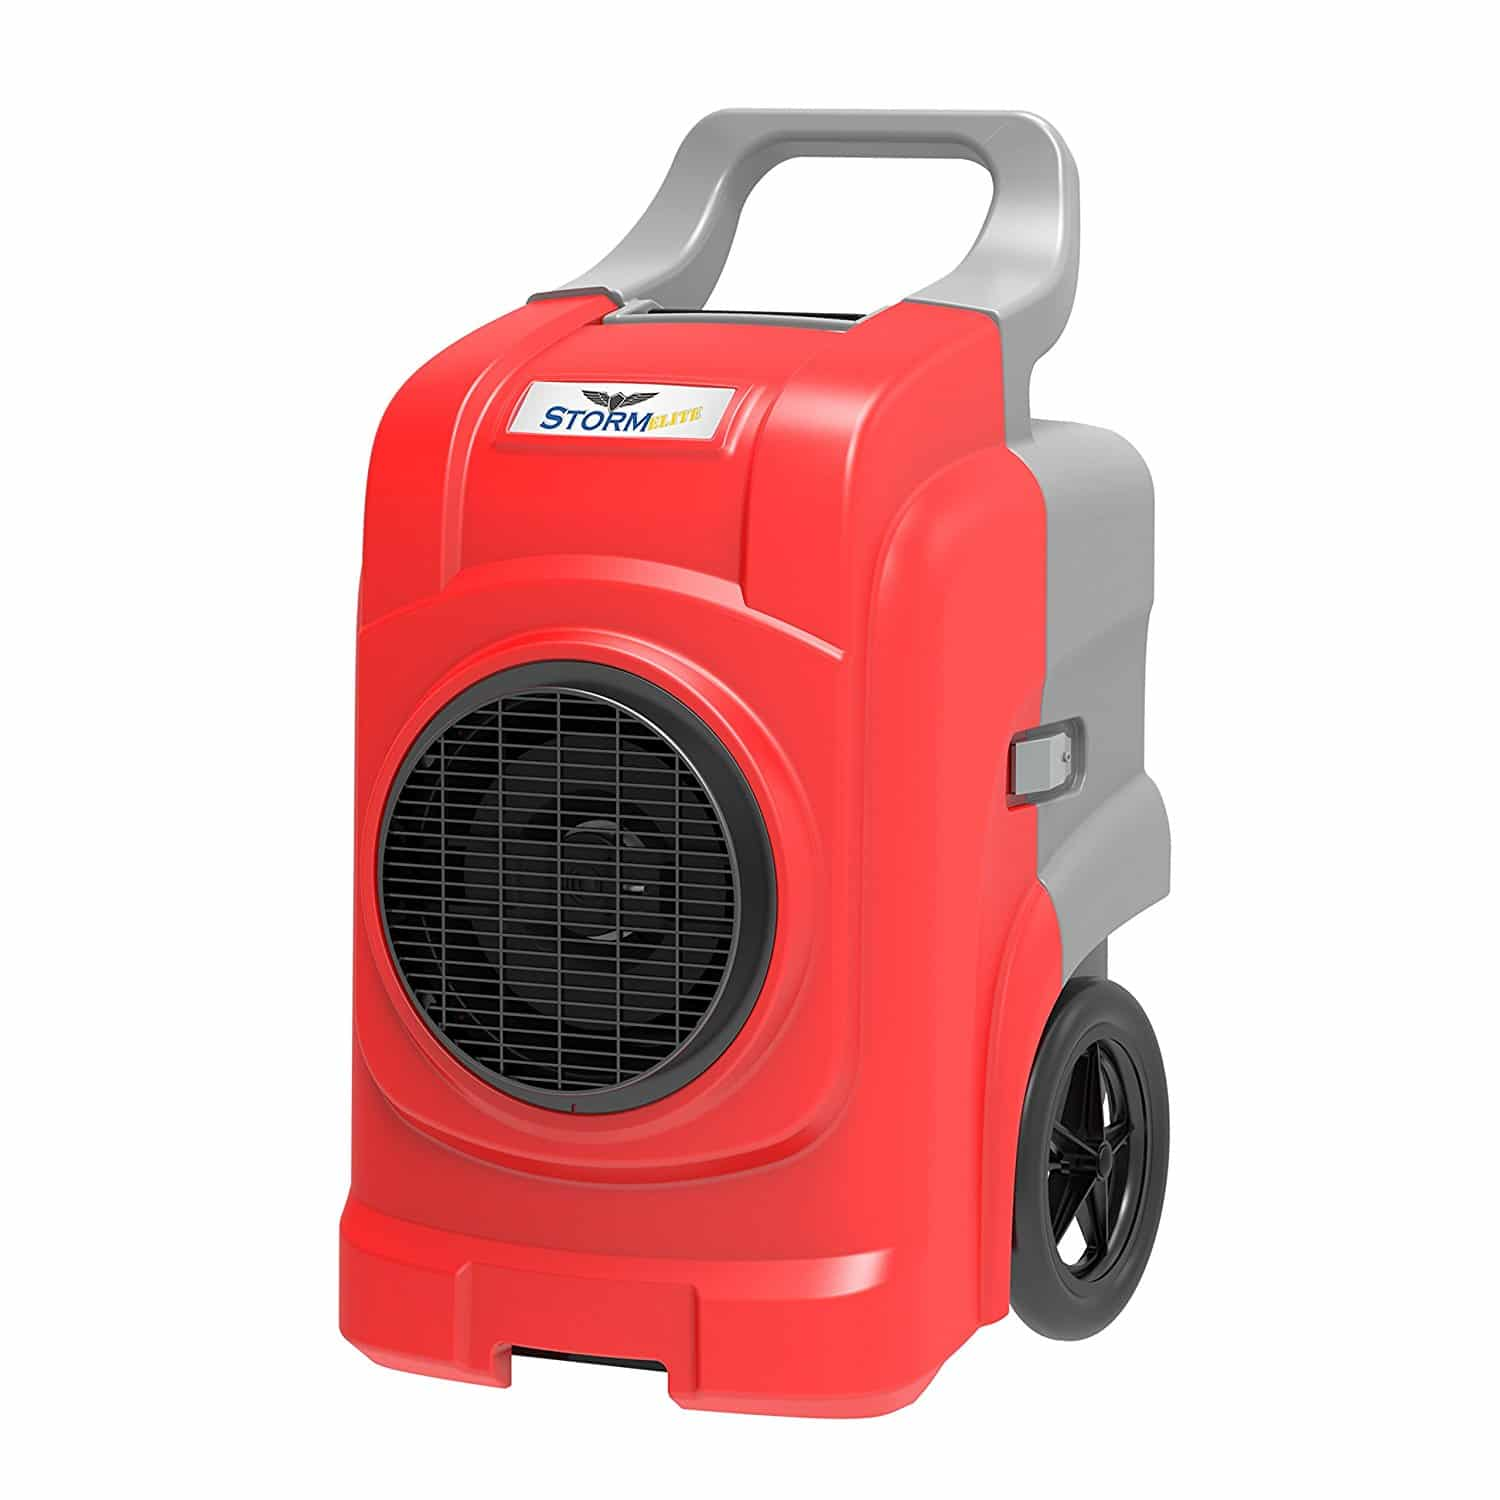 commercial dehumidifier: Grab this dehumidifier for both efficiency and durability